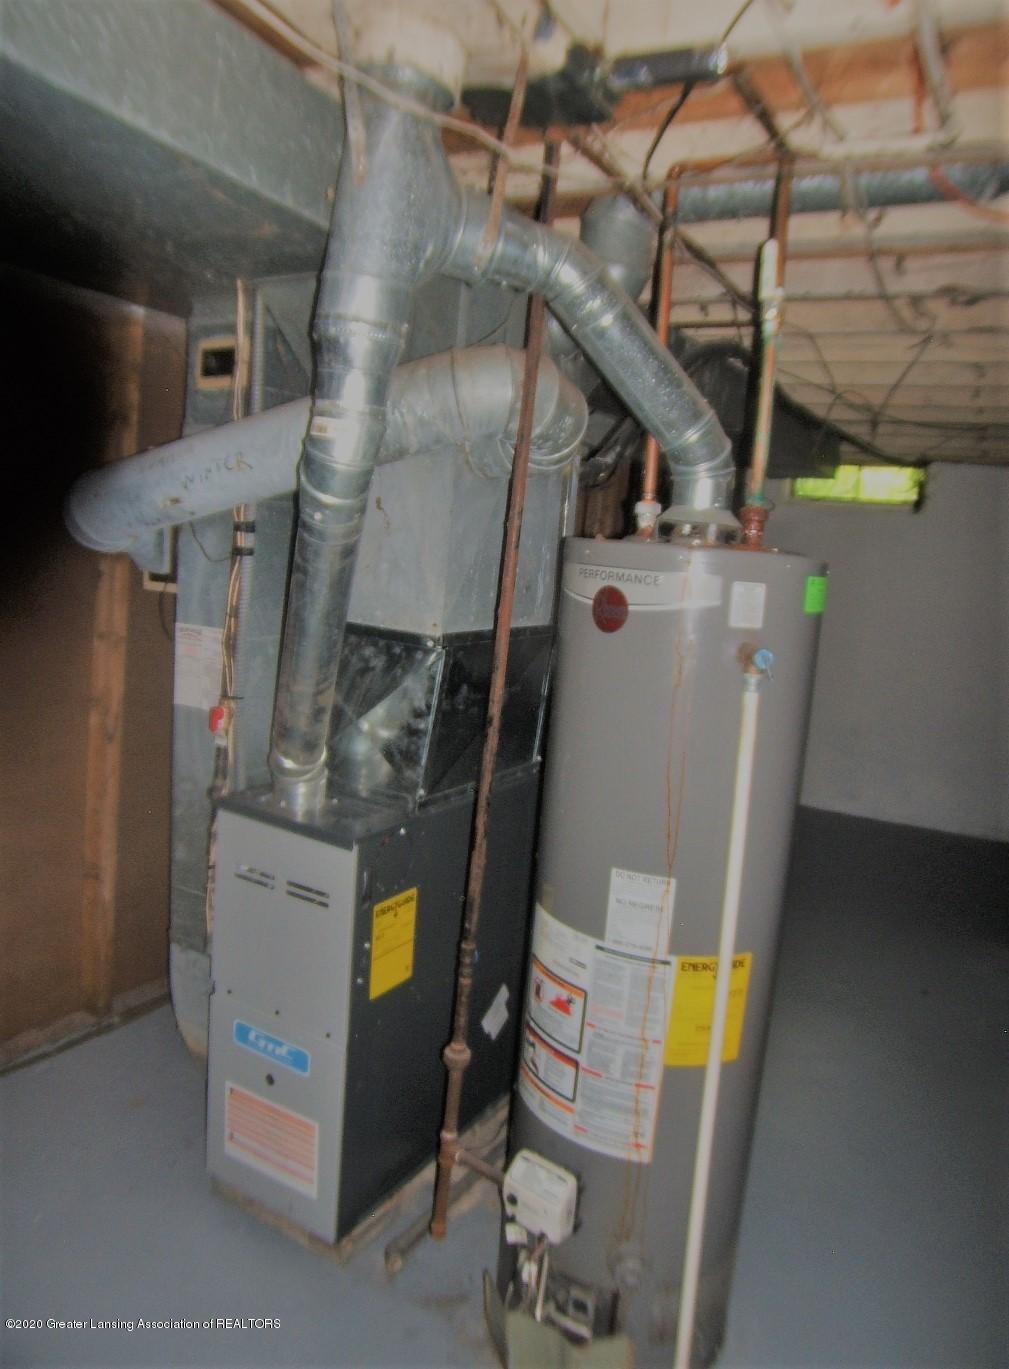 3208 W Jolly Rd - Newer Furnace / Water Heater - 14